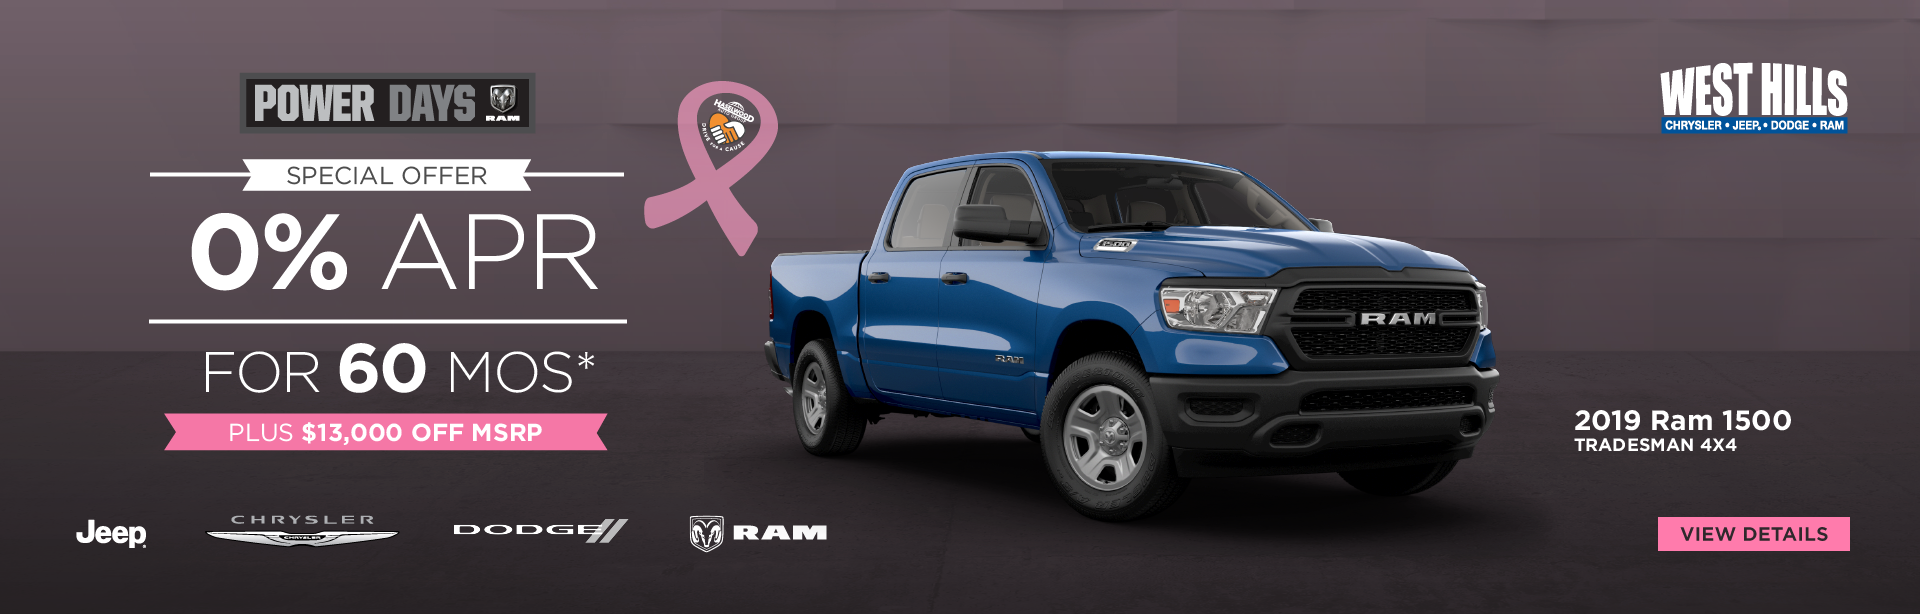 2018 RAM 2500 TRADESMAN  0% for 72 mos.*    *Offer valid on 2018 RAM 2500 TRADESMAN. 0% for 72 mos. Based on MSRP $51,705. VIN: 3C6UR4CLXJG336134. Subject to credit approval. Based on approval of program ID 70AJ7C. Down payment and monthly payment may vary. 72 months at $13.89 per $1,000 financed. Excludes state and local taxes, tags, registration and title, insurance and dealer charges.  A negotiable dealer documentary service fee of up to $150 may be added to the sale price or capitalized cost. Offer expires:  9/3/2019.